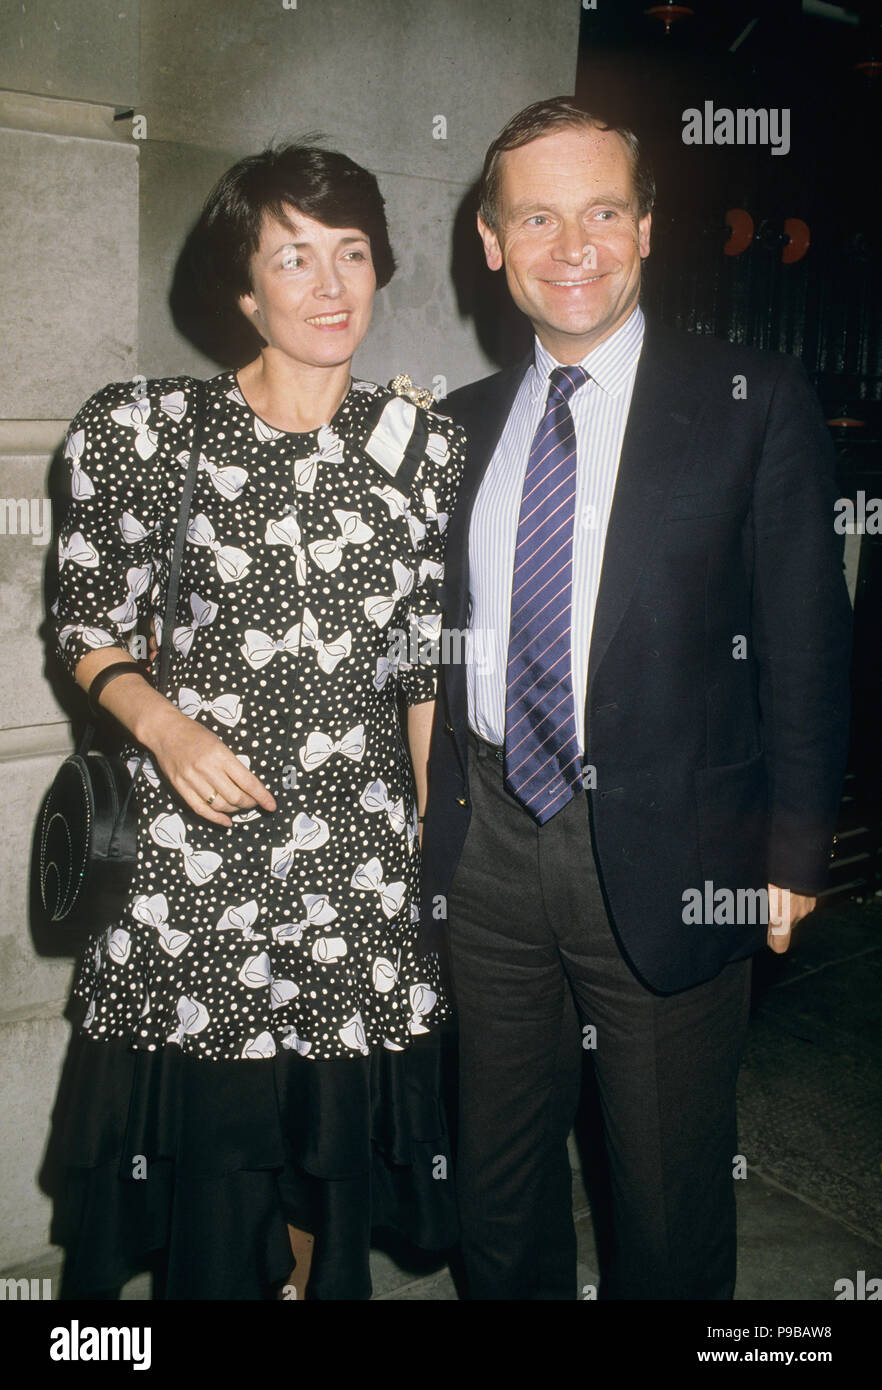 JEFFREY ARCHER English novelist and politician with his wife Mary about 1990 - Stock Image